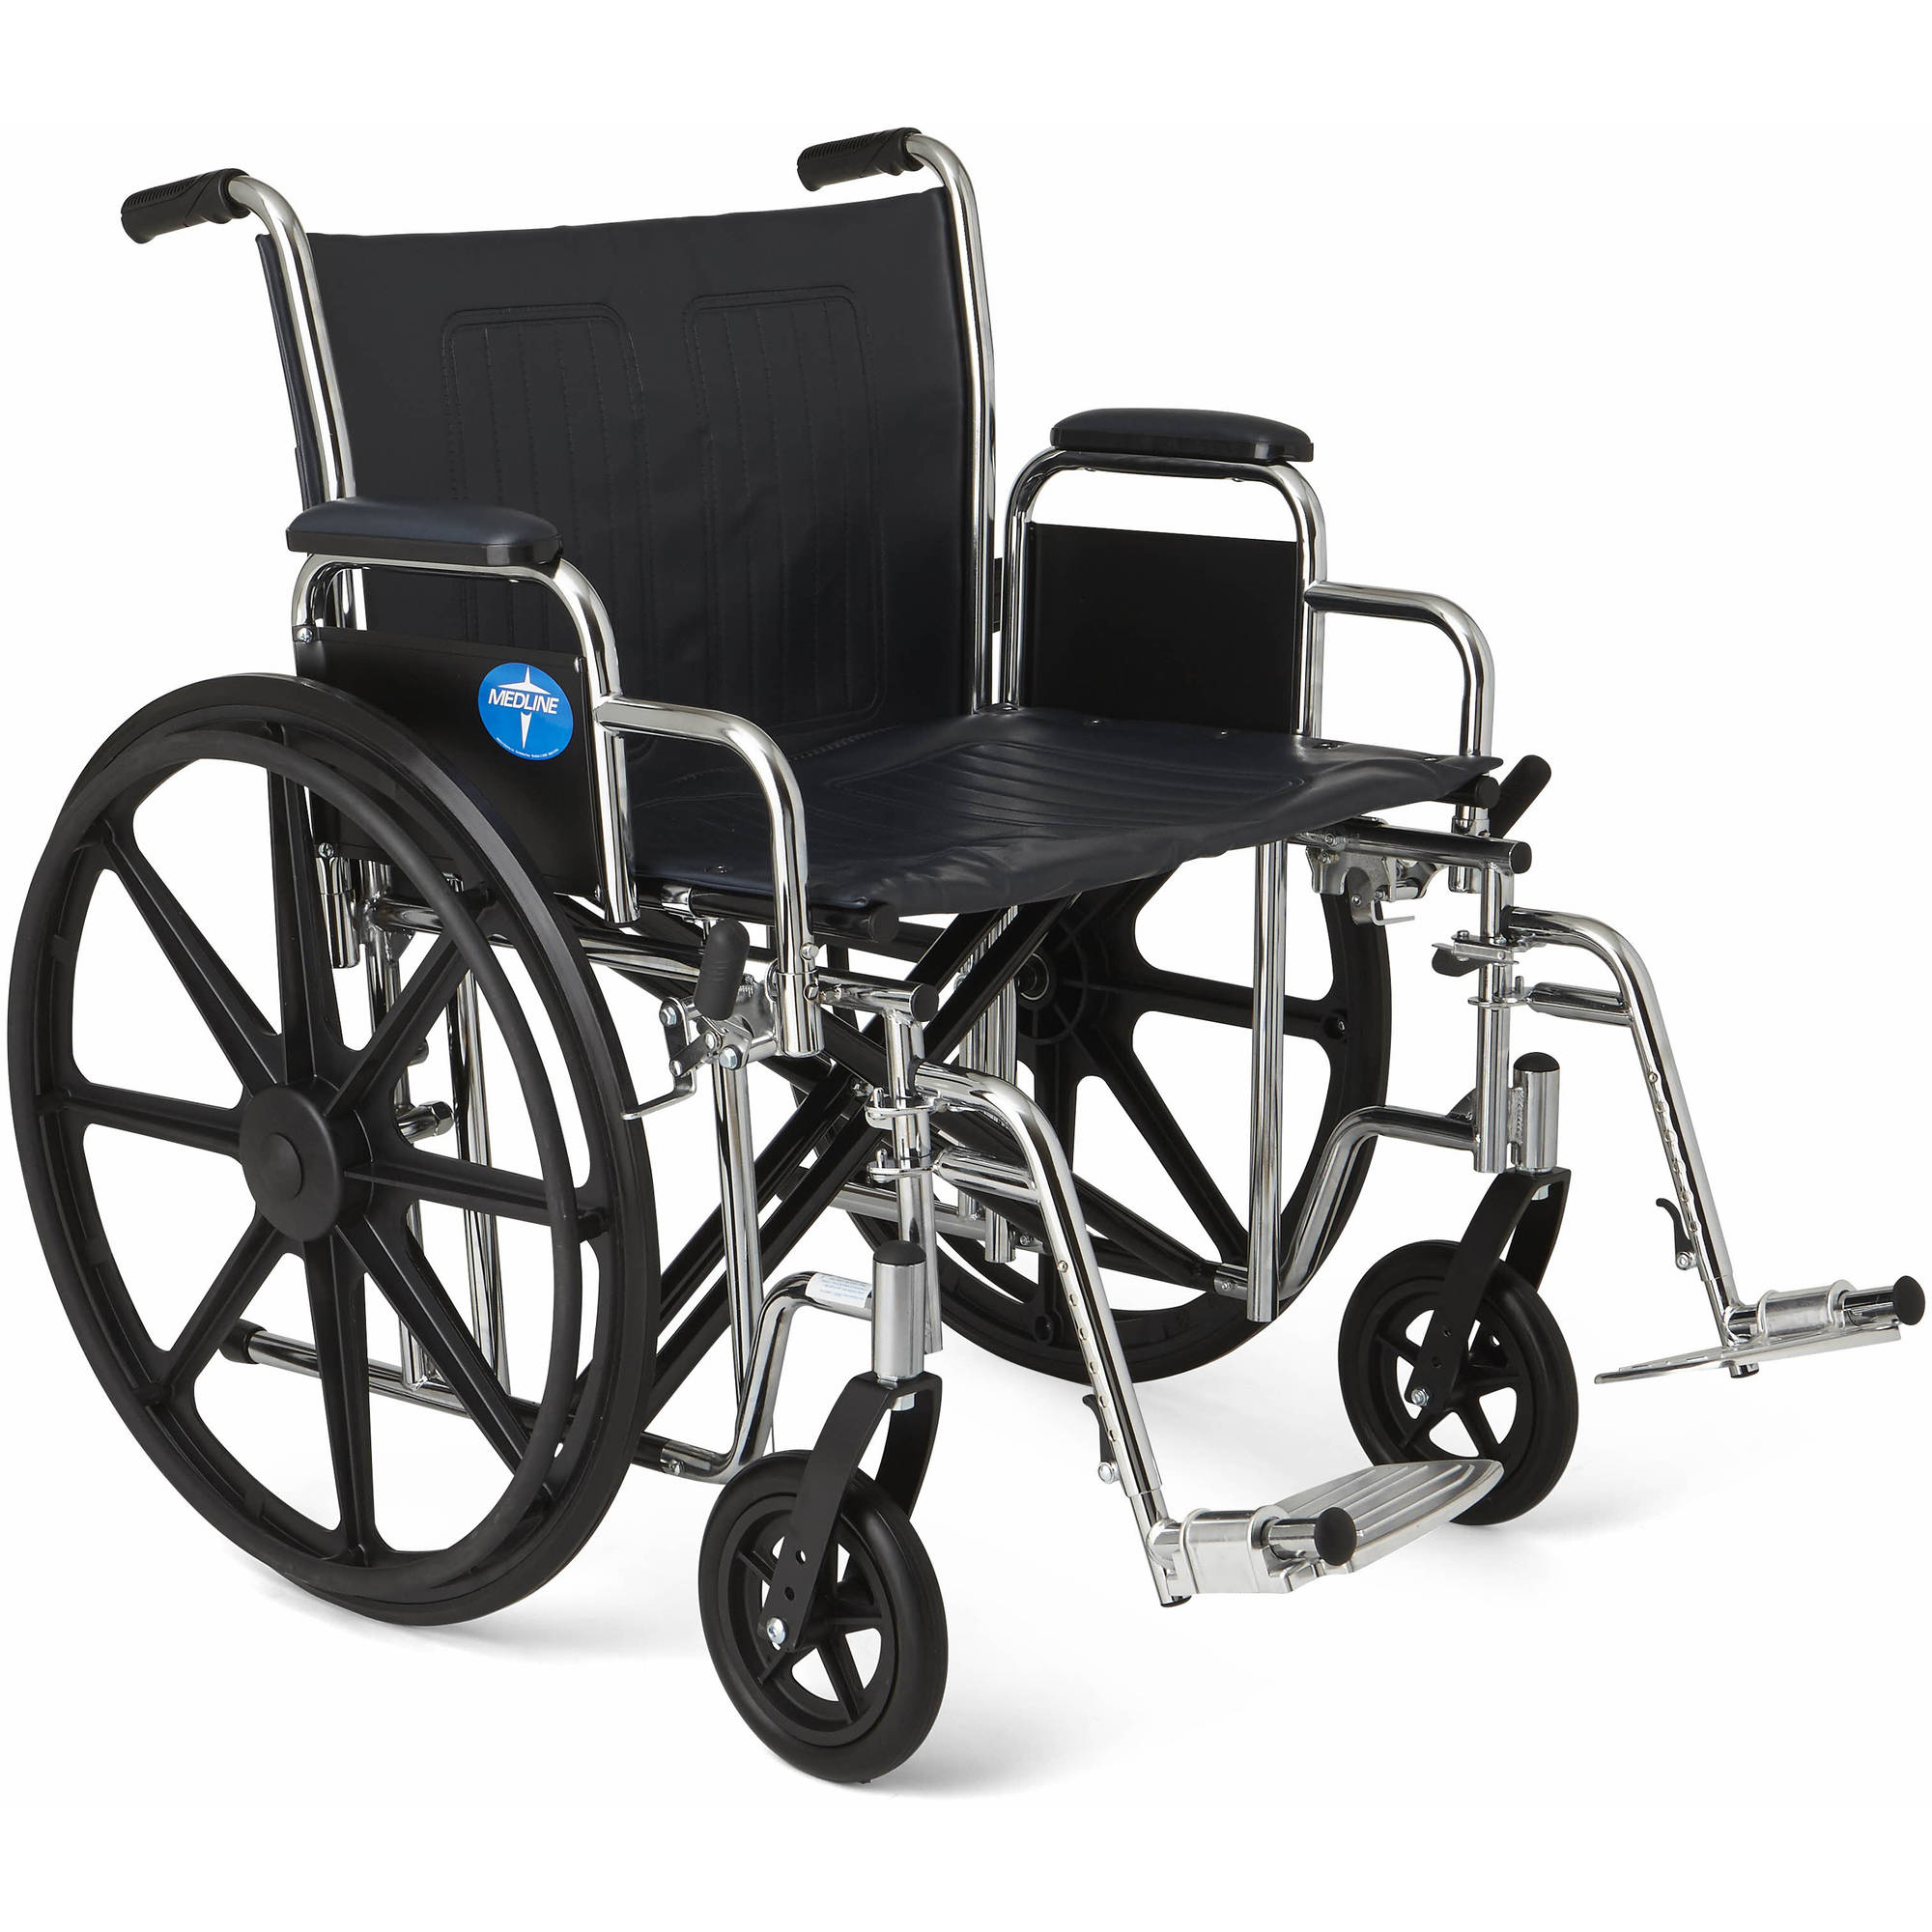 "Medline Excel Extra-Wide Wheelchair, 24"" Wide Seat, Desk-Length Removable Arms, Swing Away Footrests"